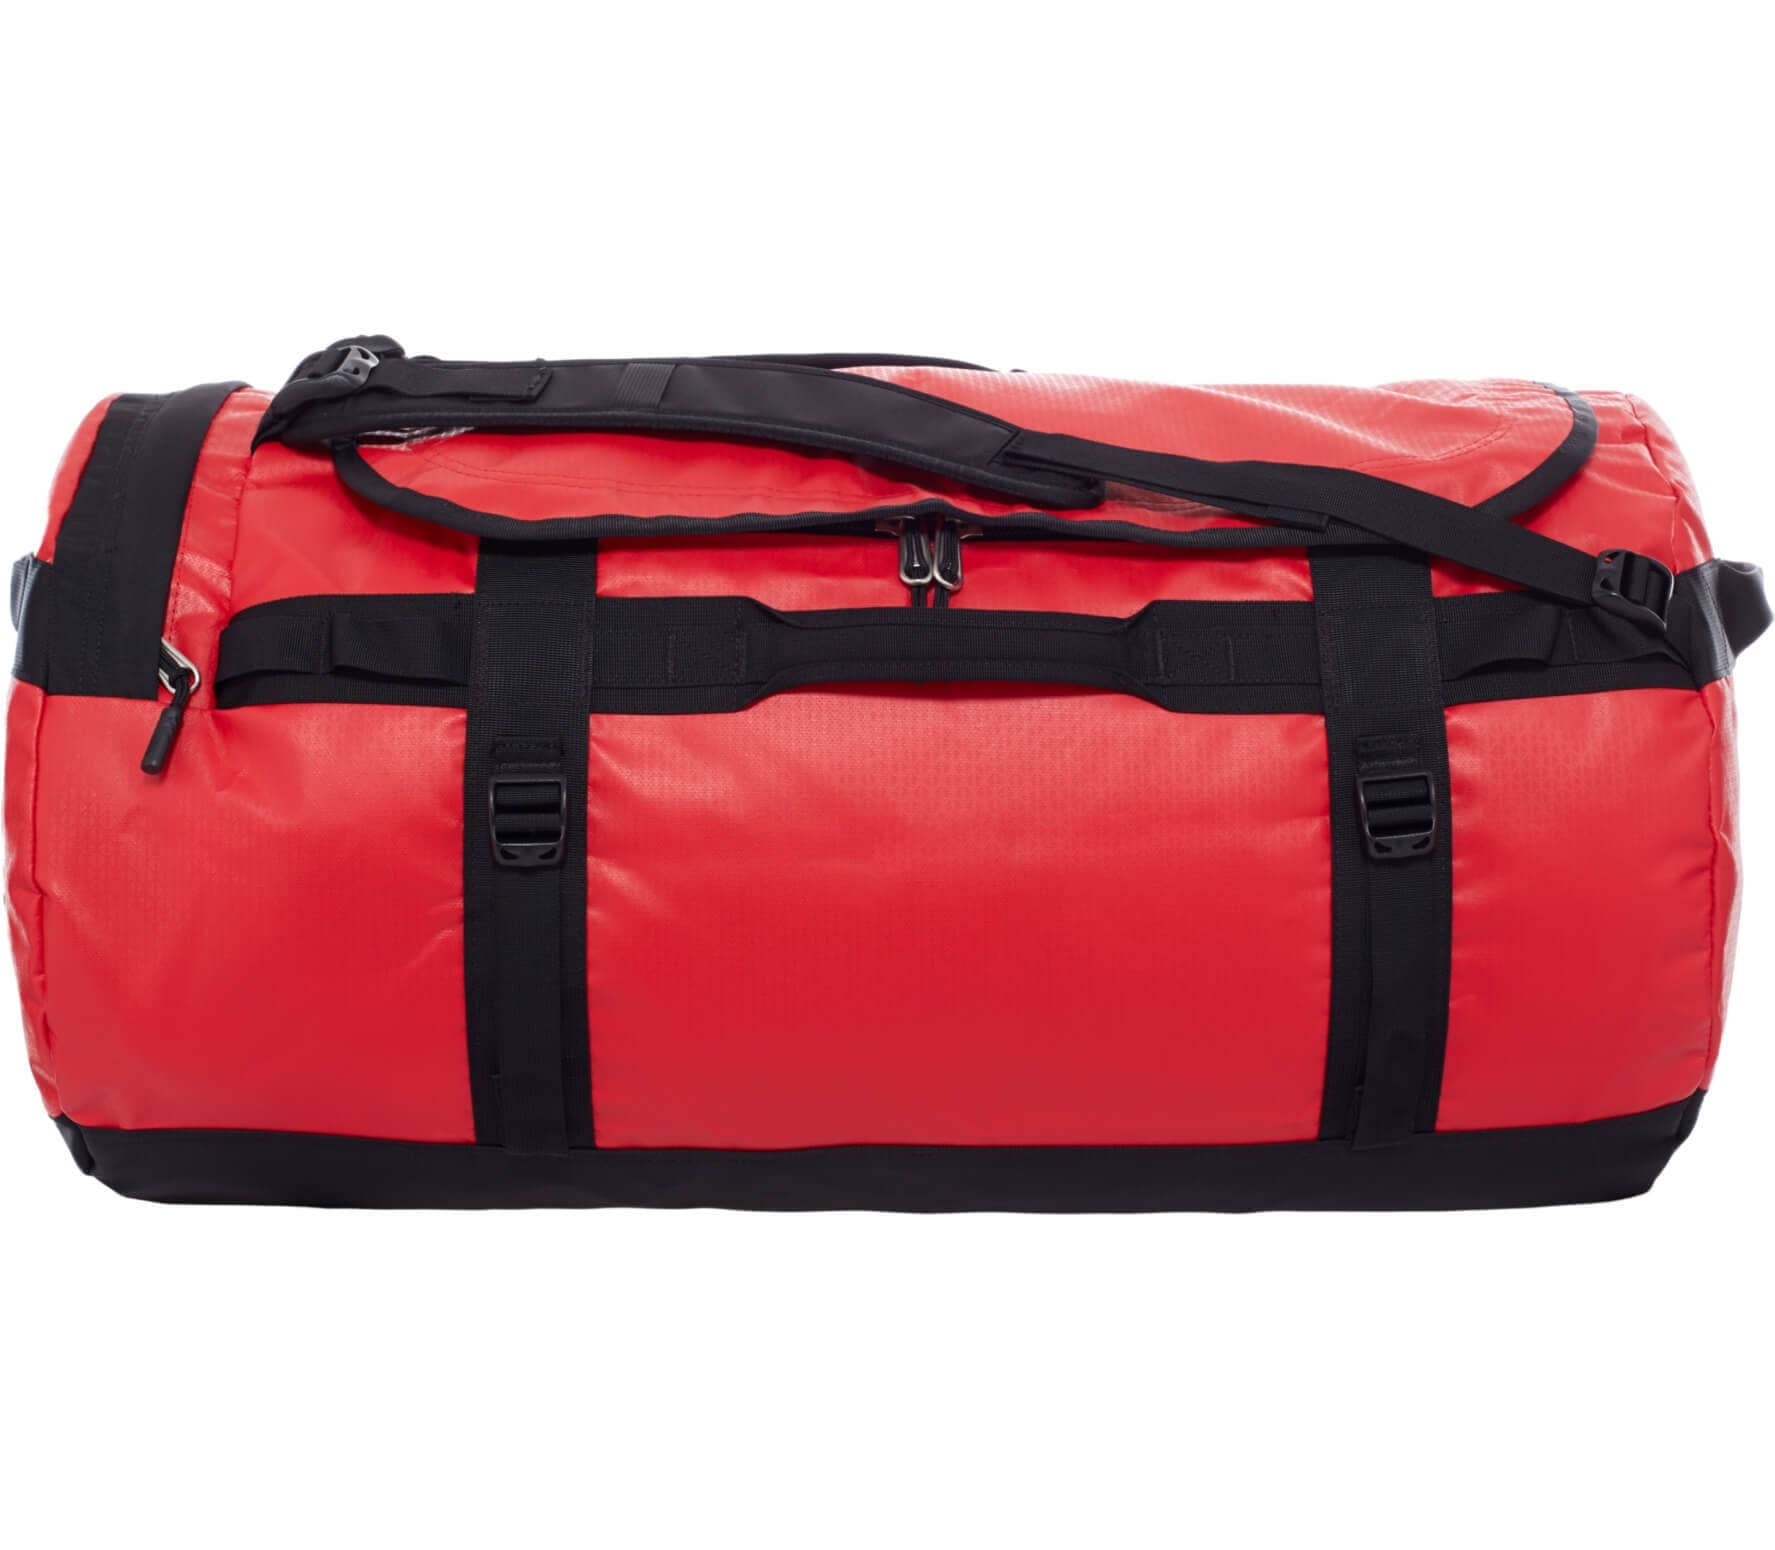 The North Face - Base Camp duffel Bag L (rød/sort) thumbnail